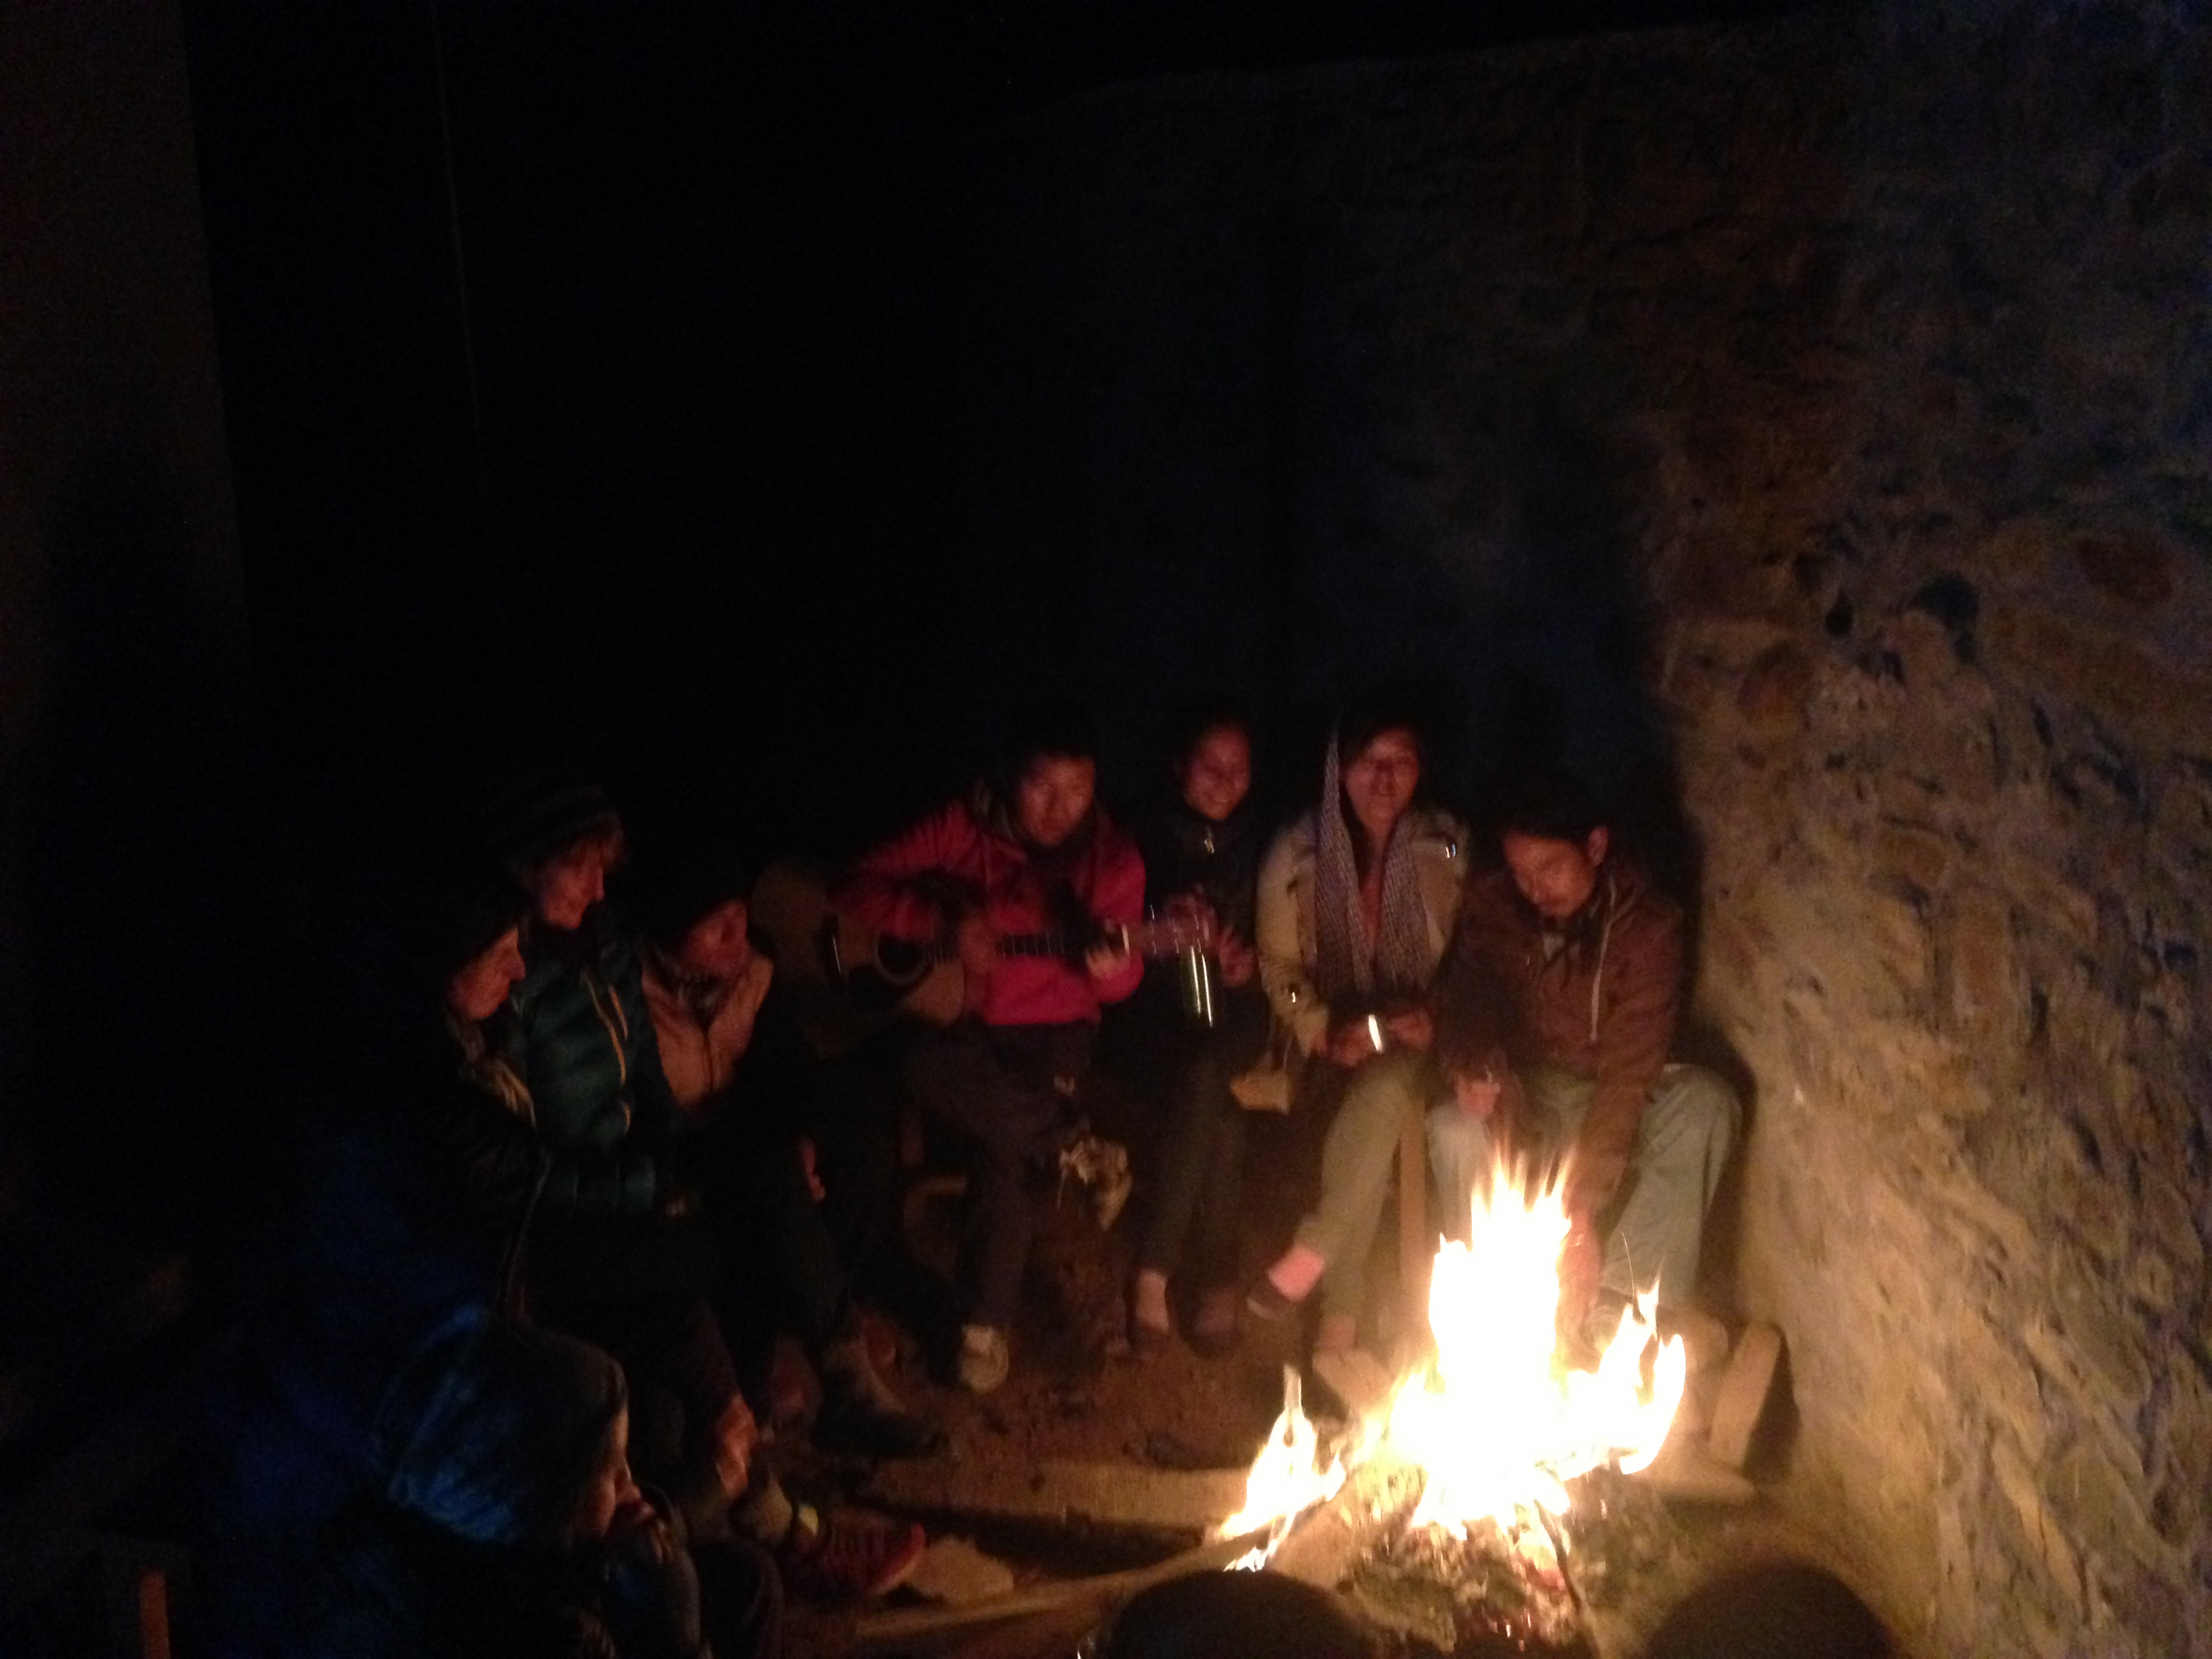 A photo of the locals singing folk songs around a campfire